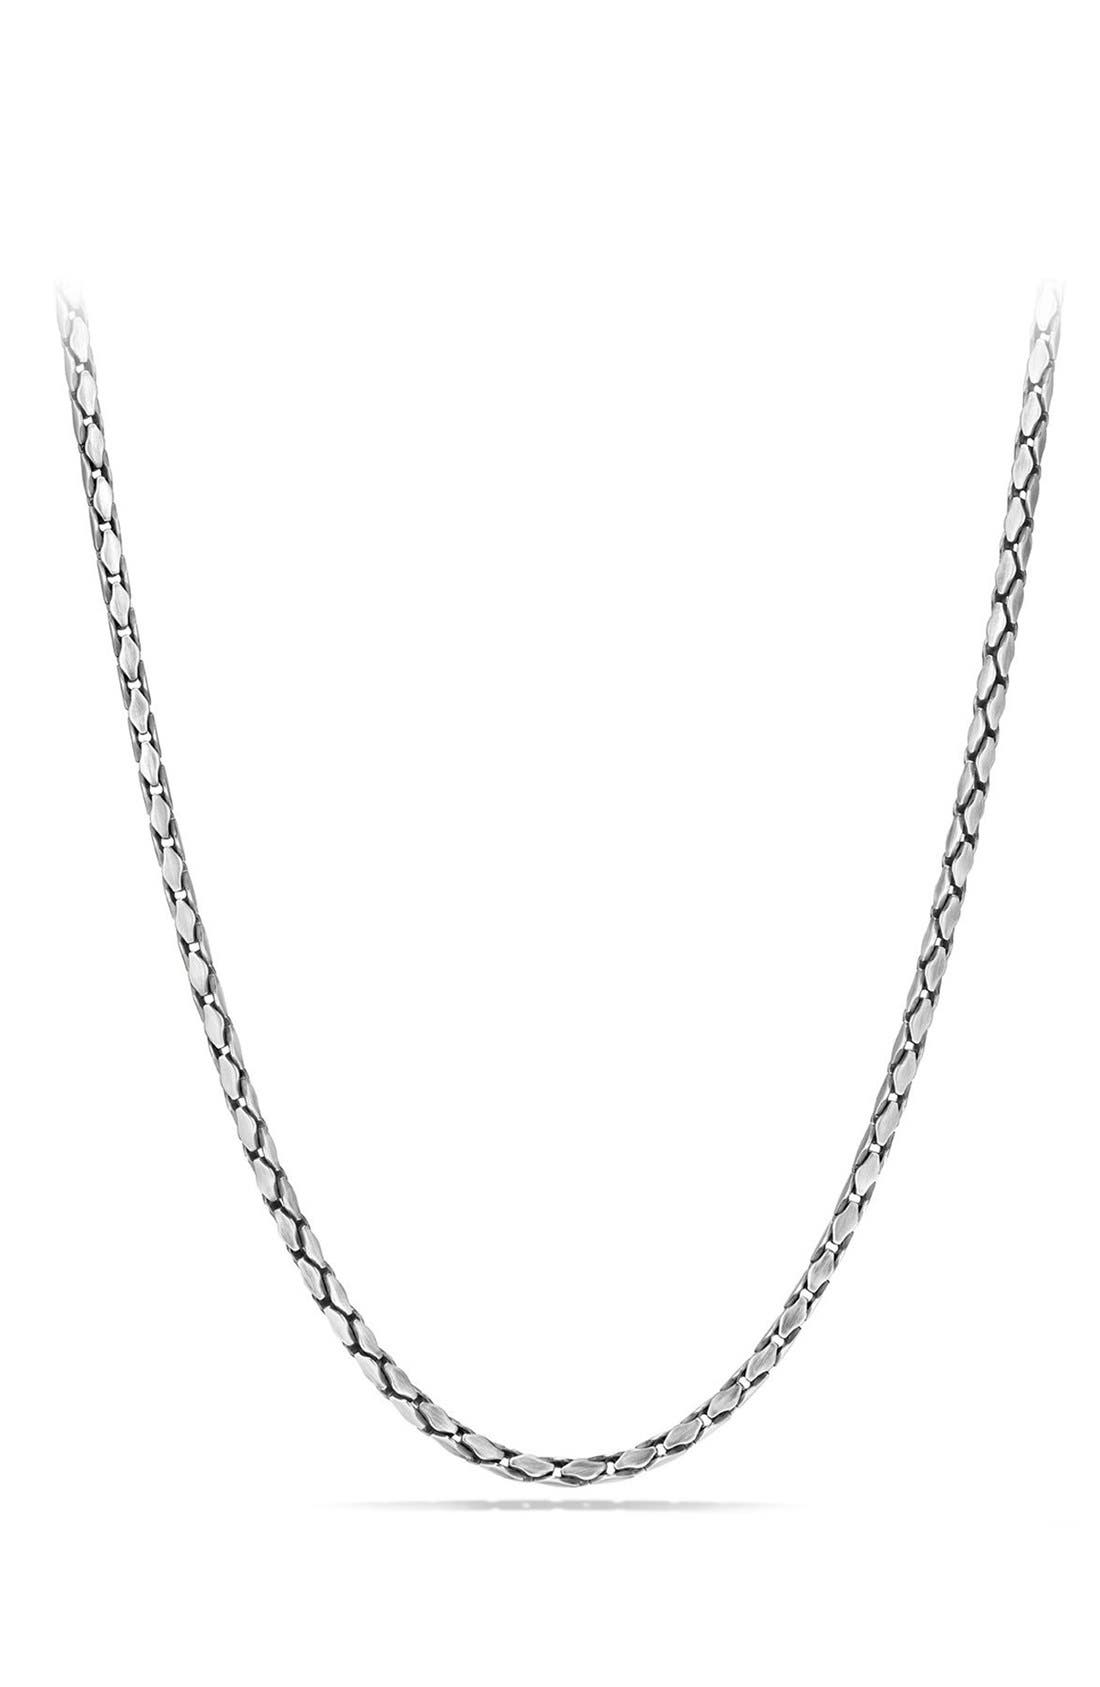 Alternate Image 1 Selected - David Yurman 'Chain' Small Fluted Chain Necklace, 3.8mm